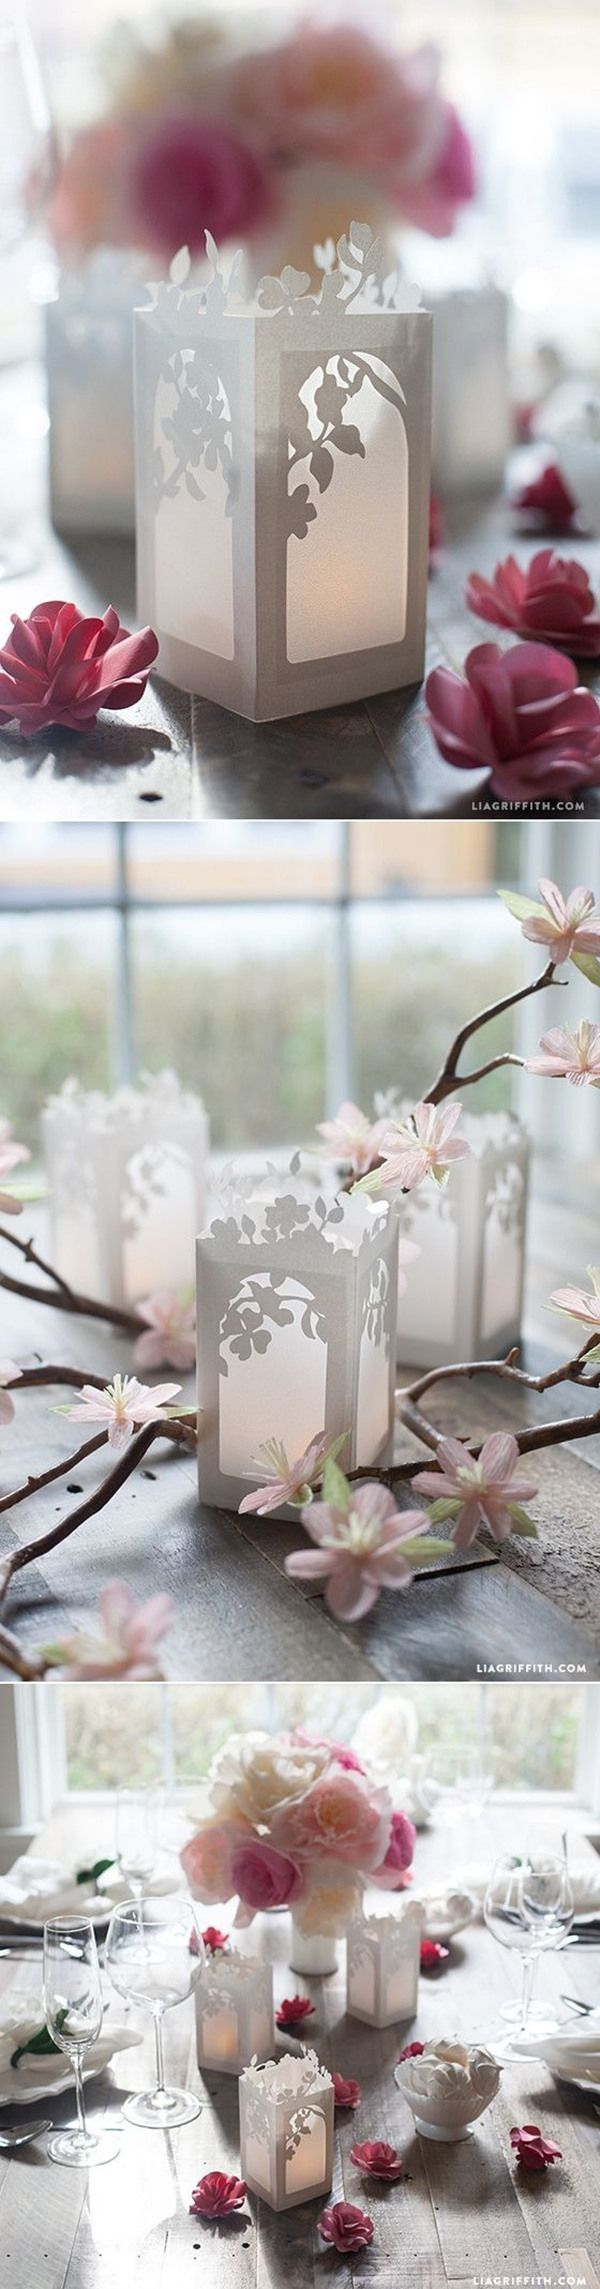 149 best DIY Wedding Ideas images on Pinterest | At home, Card ...